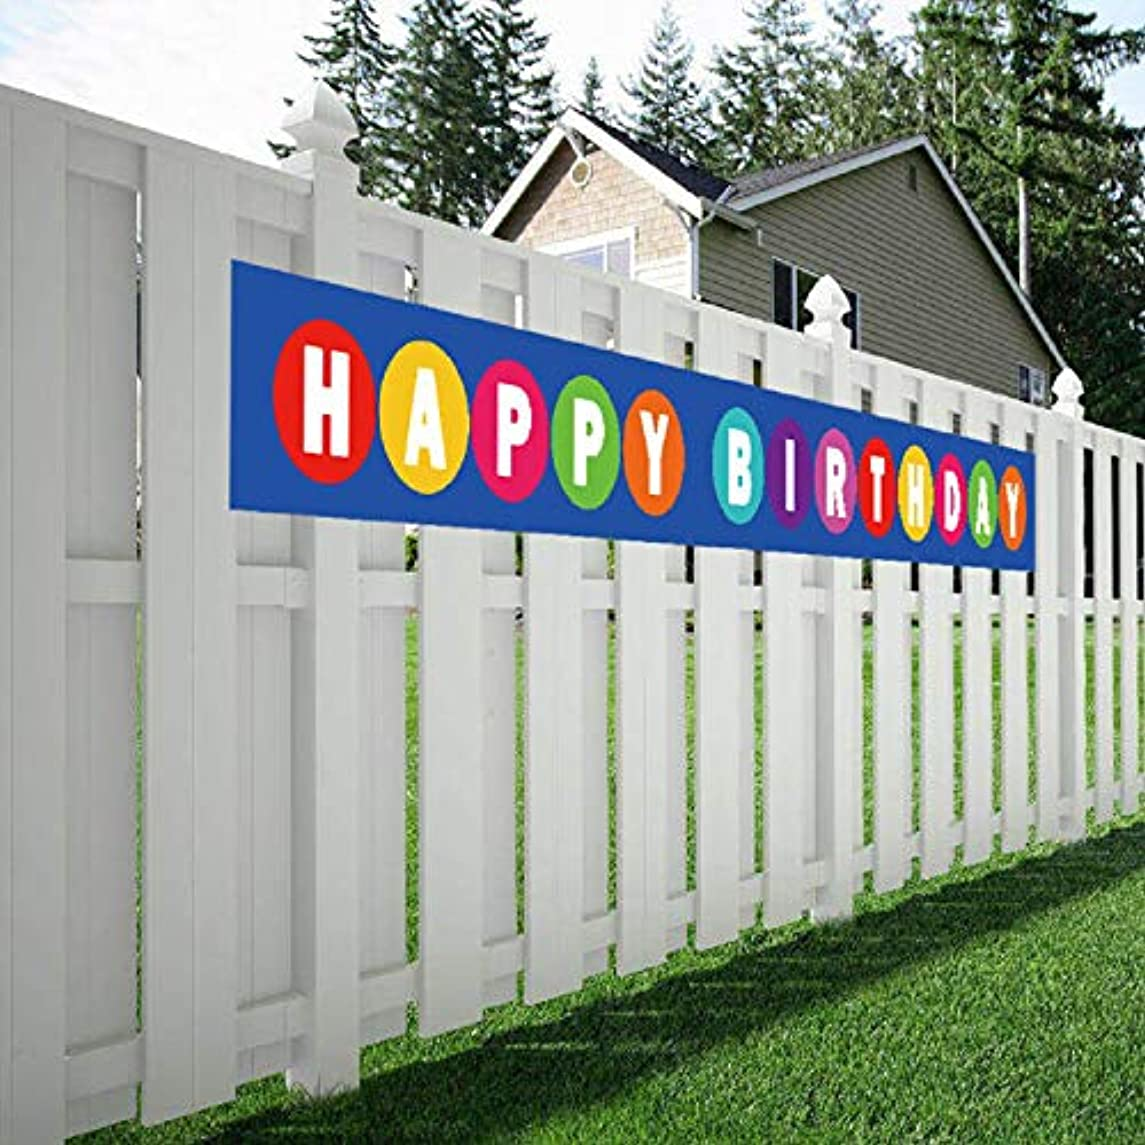 Large Happy Birthday Banner, Huge Bday Sign, Colorful Hanging Decorations, Party Supplies